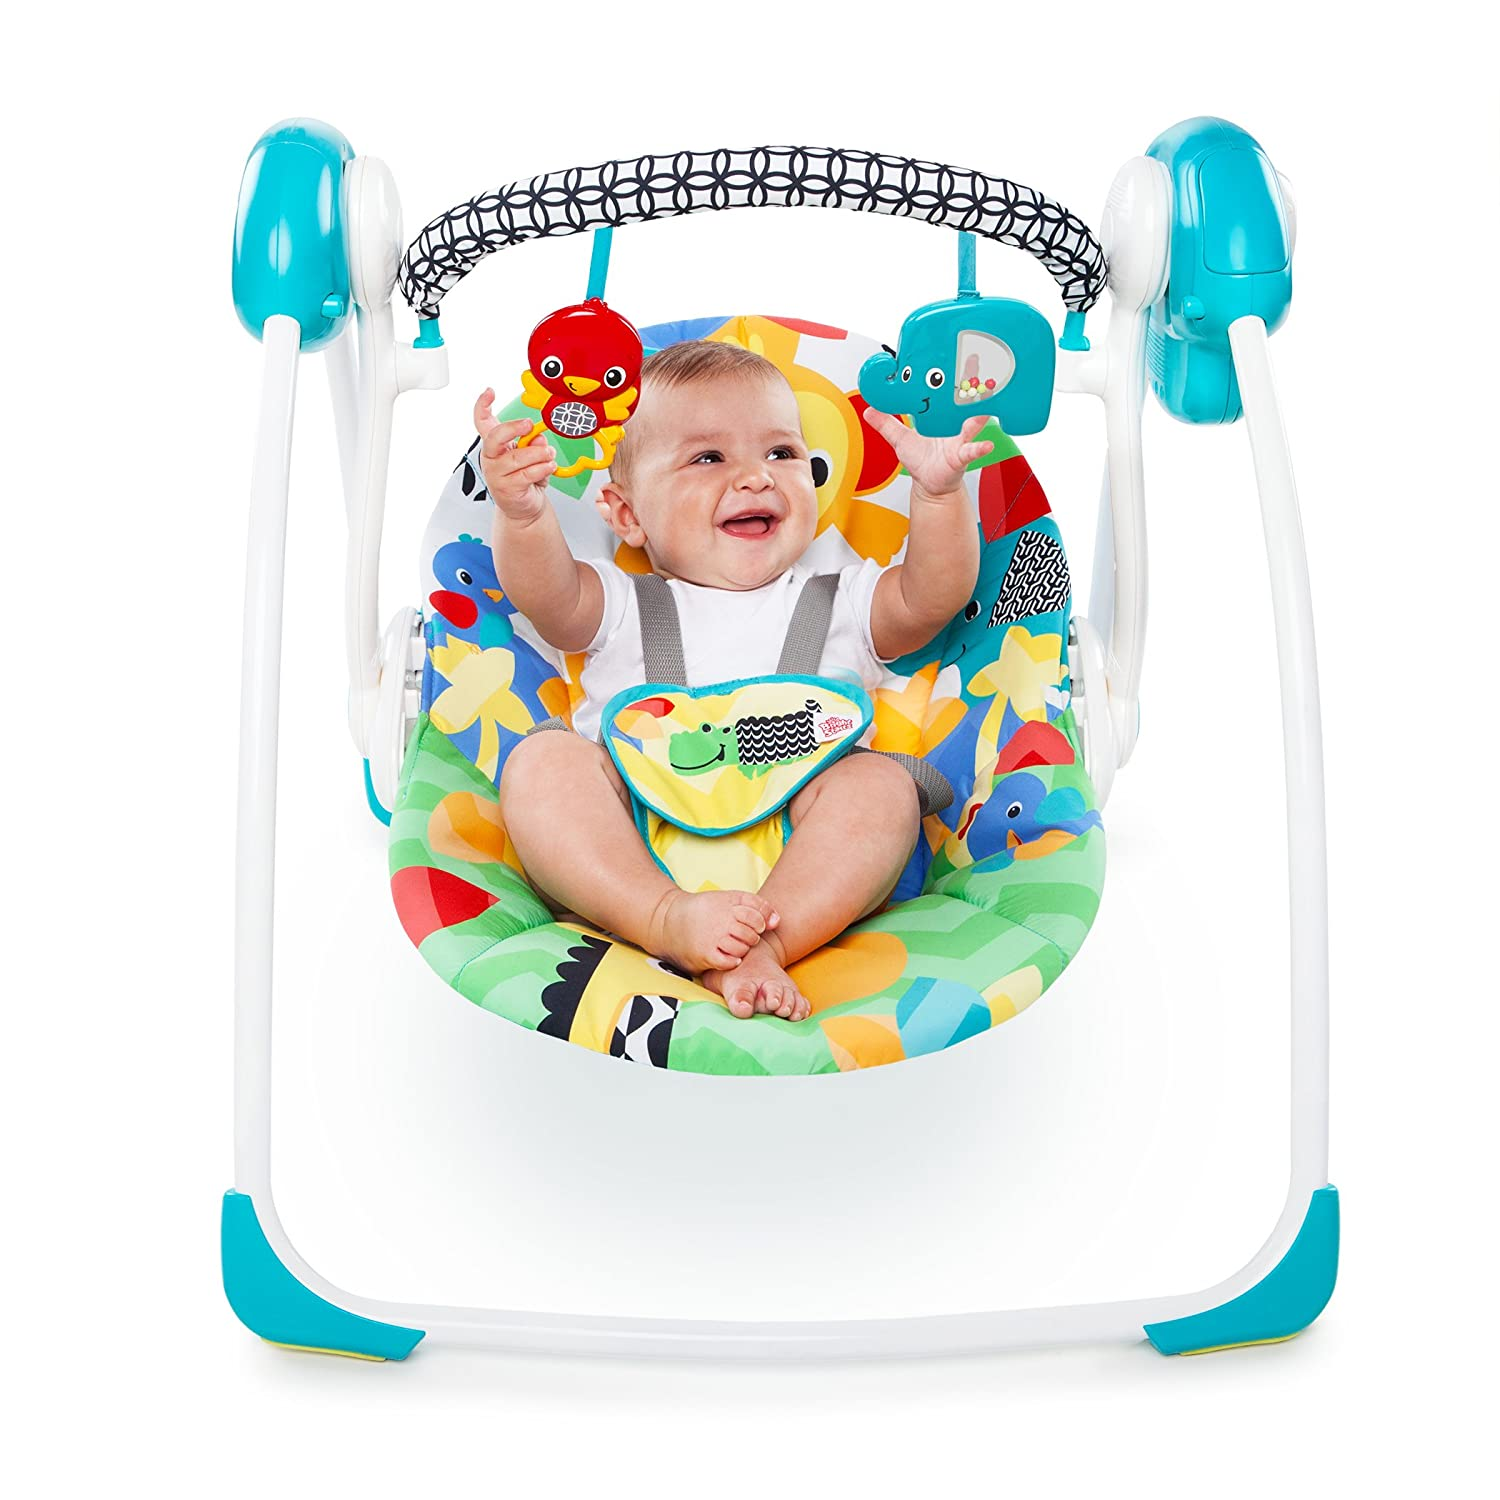 baby playing in compact/portable swing